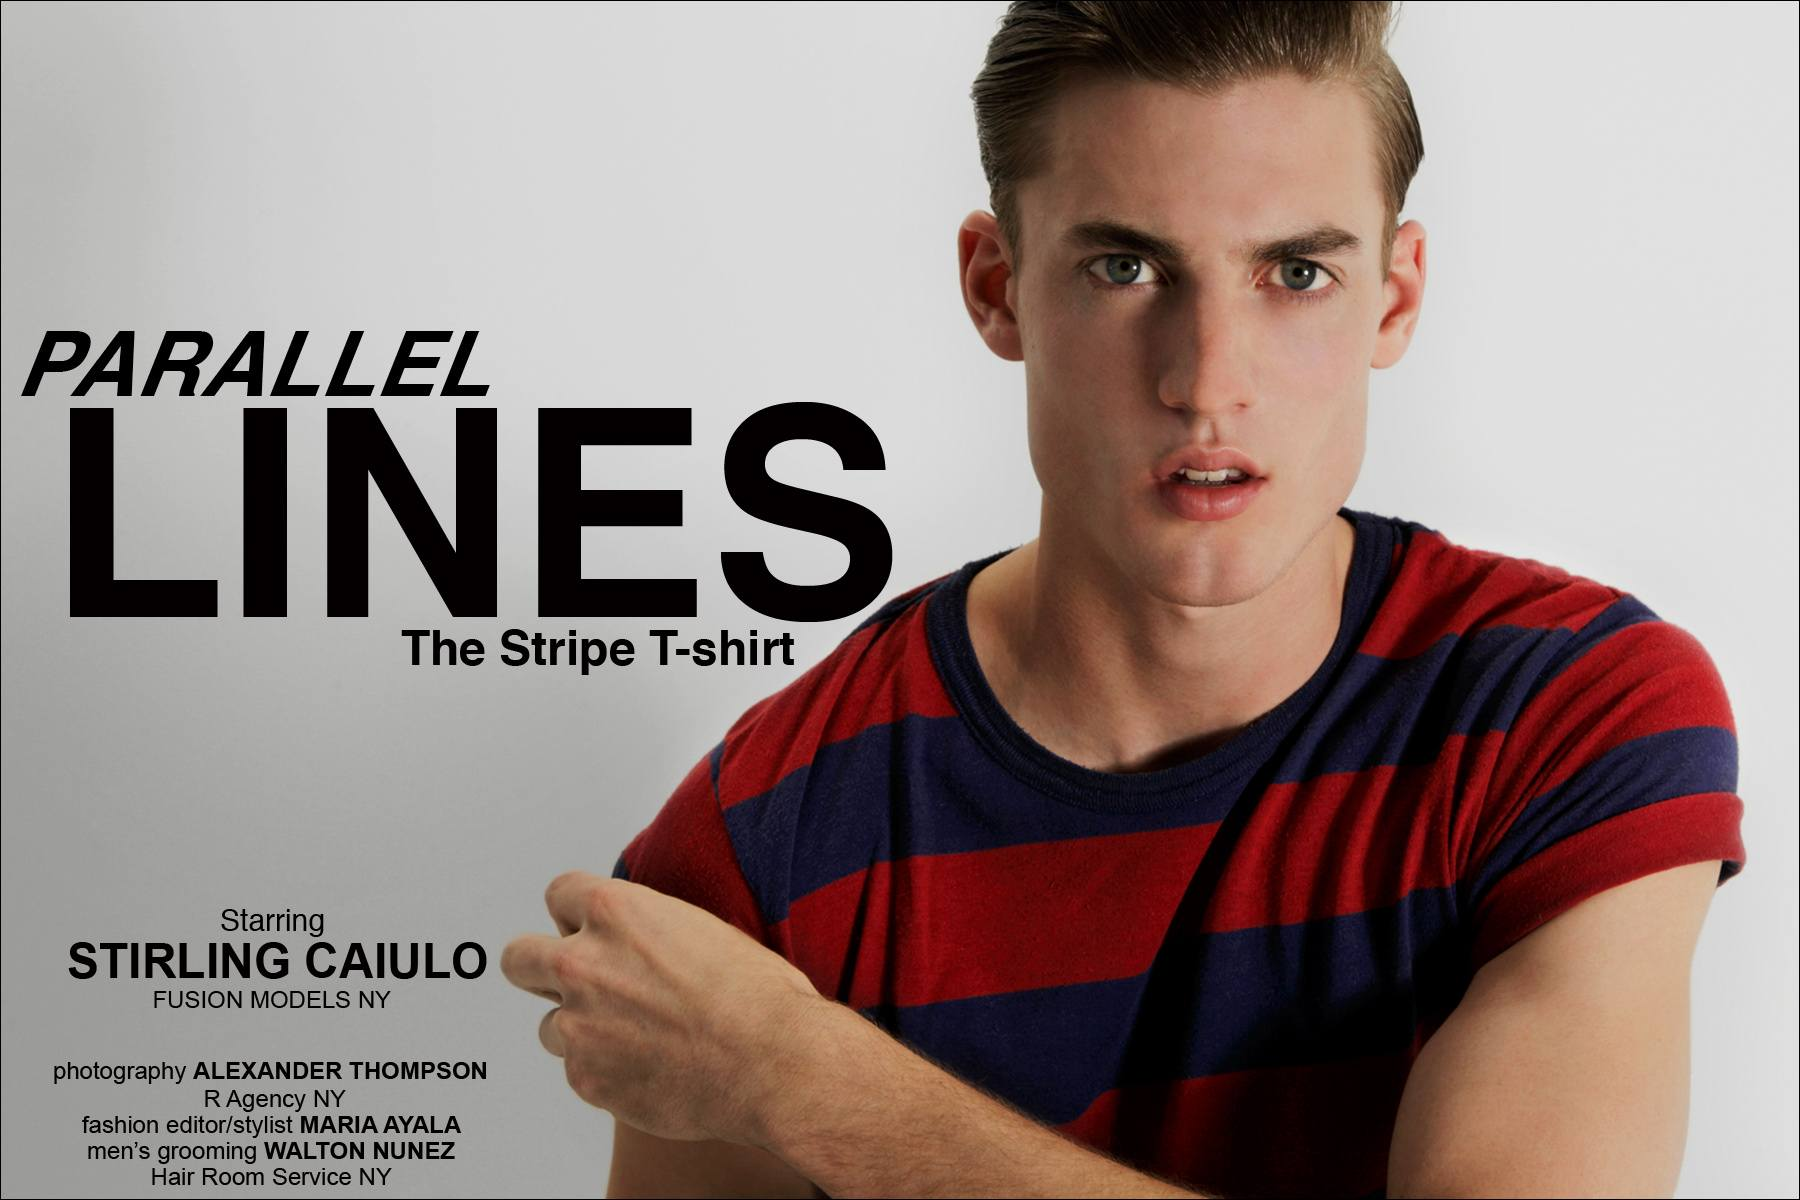 """Parallel Lines"" men's stripe t-shirt editorial starring Stirling Caiulo, from the Fusion Agency New York, photographed by Alexander Thompson for Ponyboy Magazine."